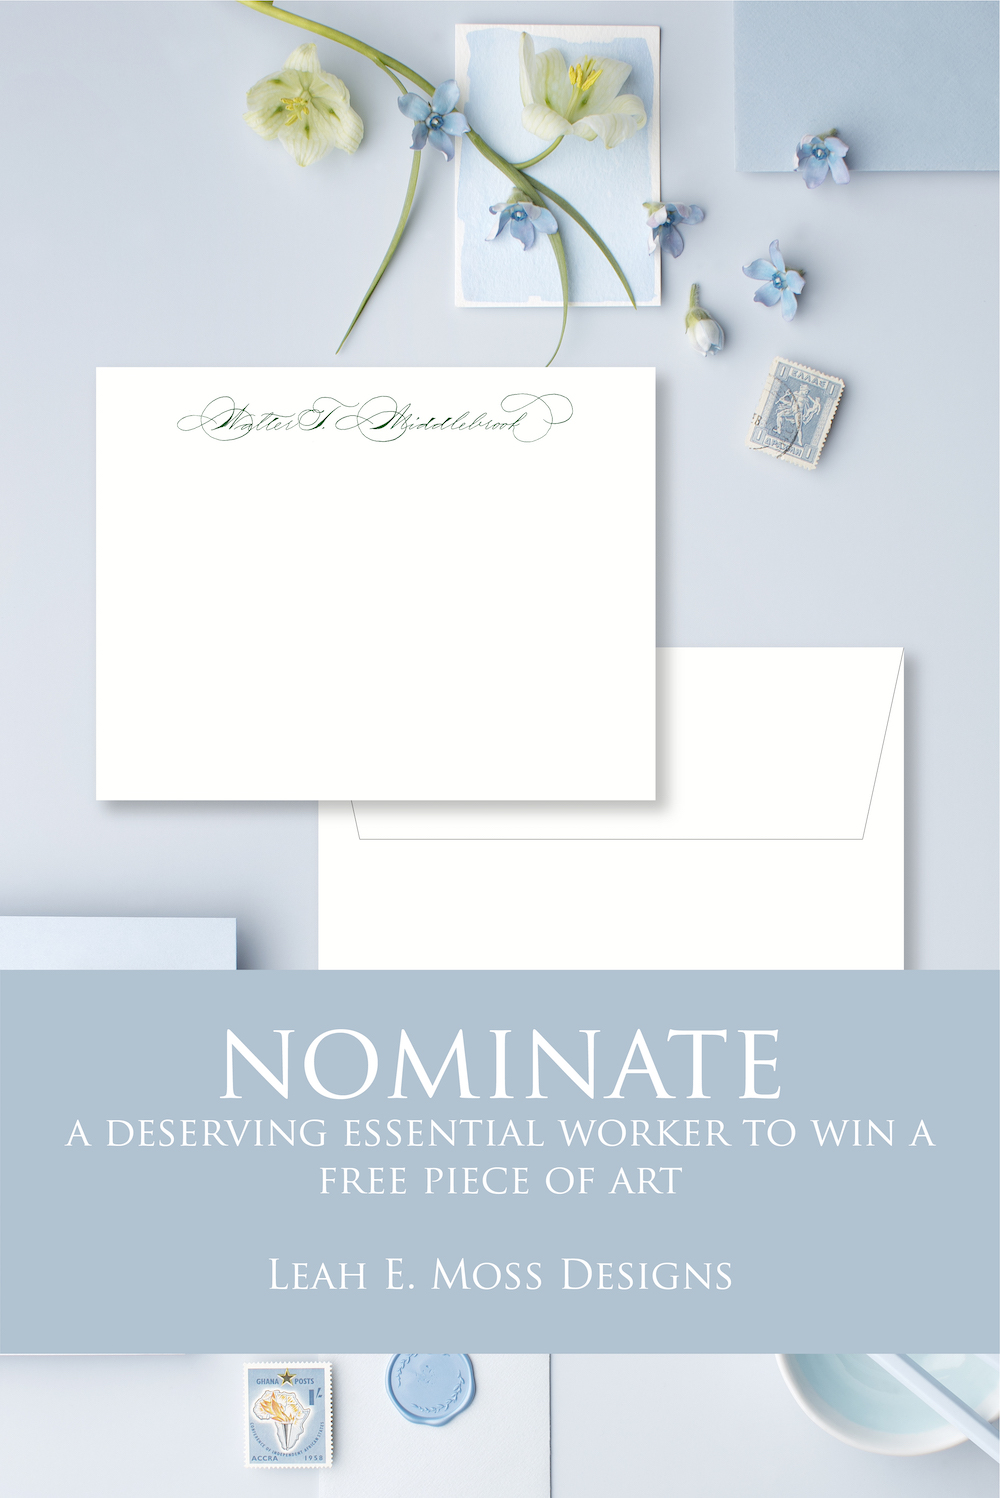 Nominate an essential worker to win free art - Shop for gifts to raise someone's spirits and help get much needed PPE for Detroit hospital - Leah E. Moss Designs